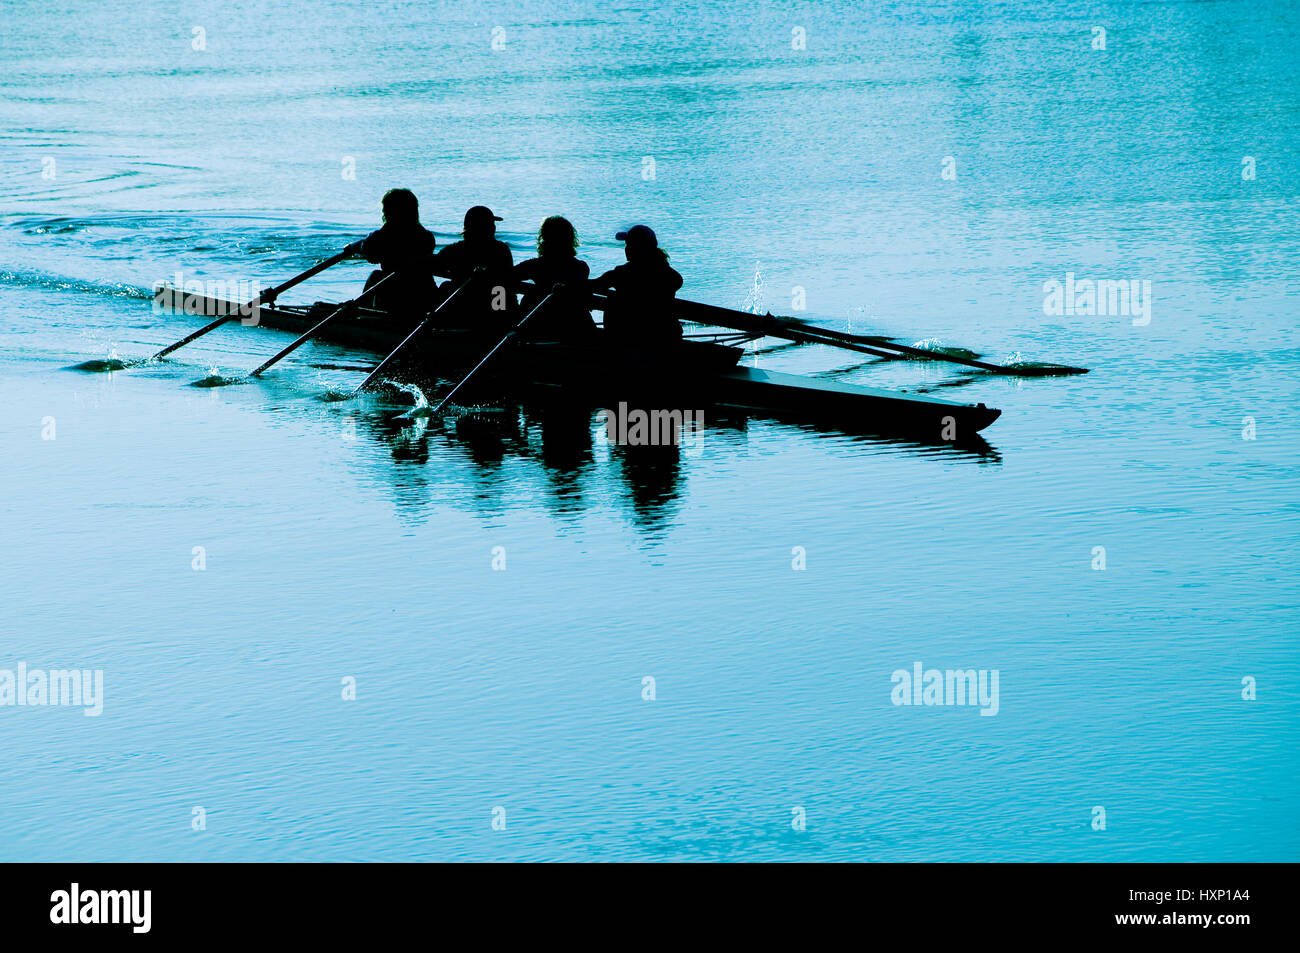 team of four women rowing - Stock Image